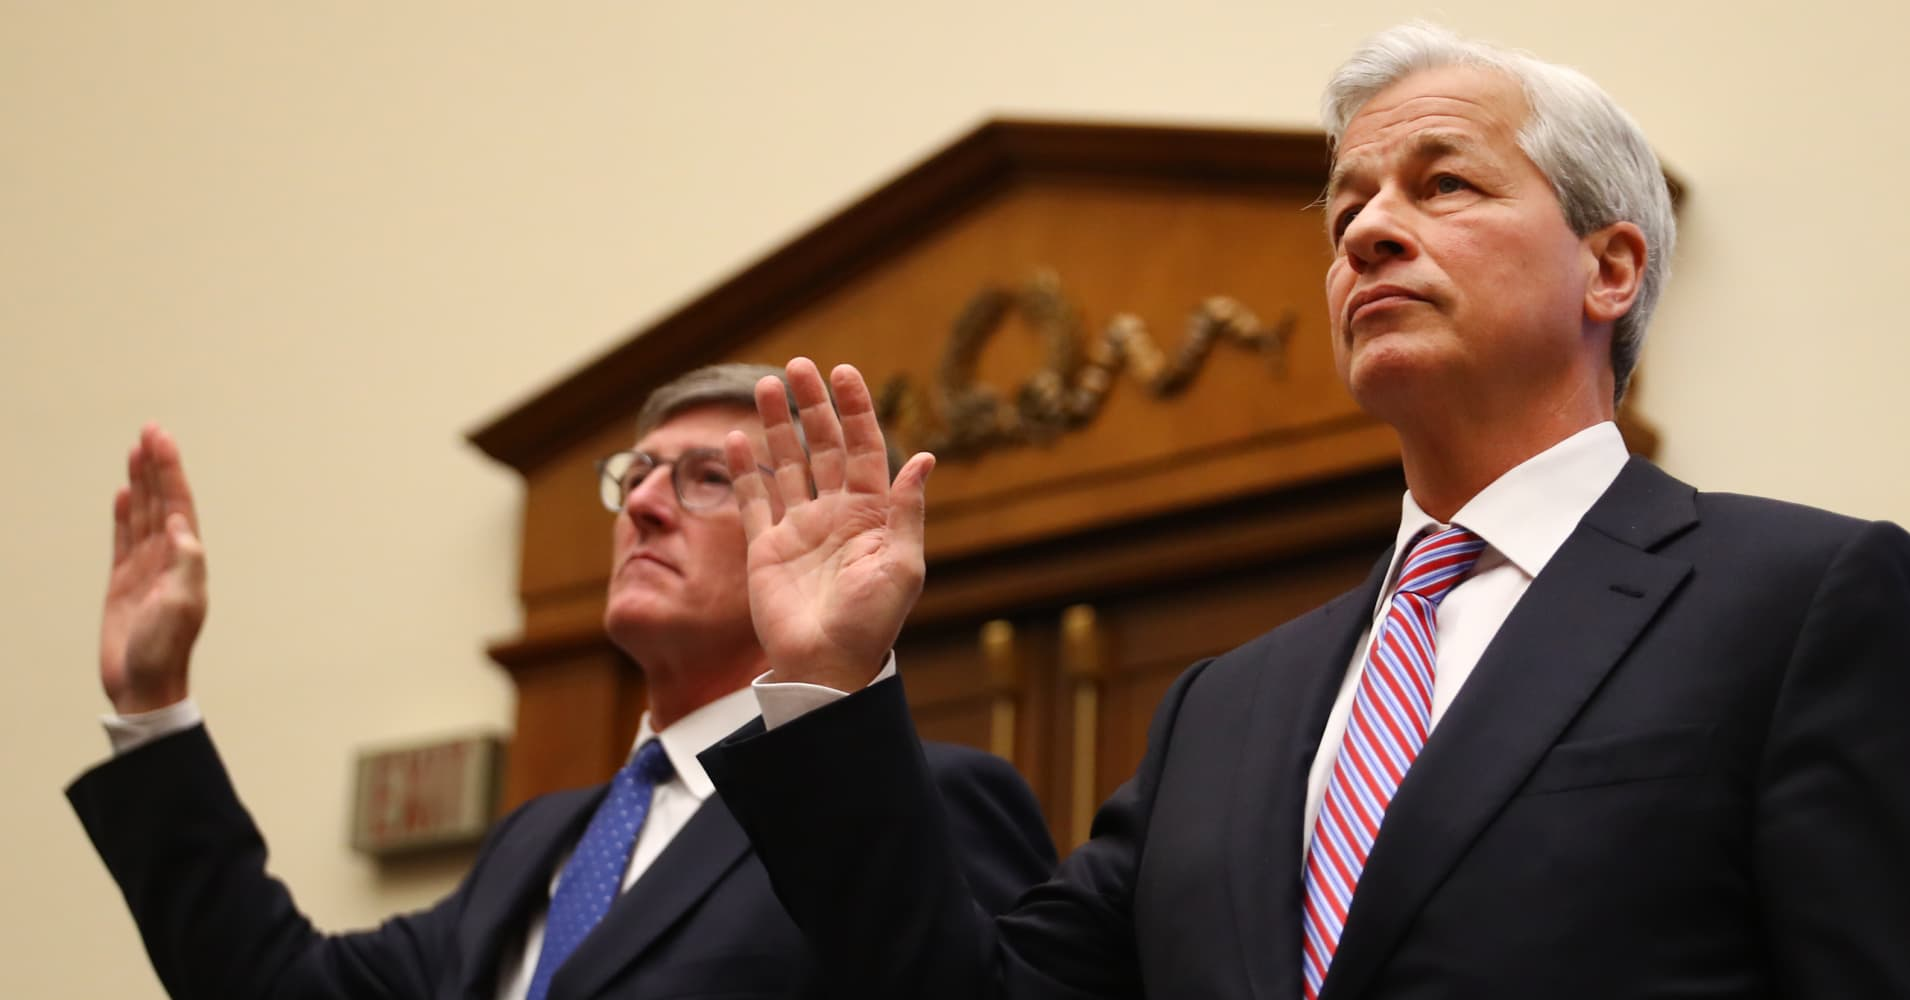 Here's what Jamie Dimon and other bank CEOs said are the biggest risks to the economy right now